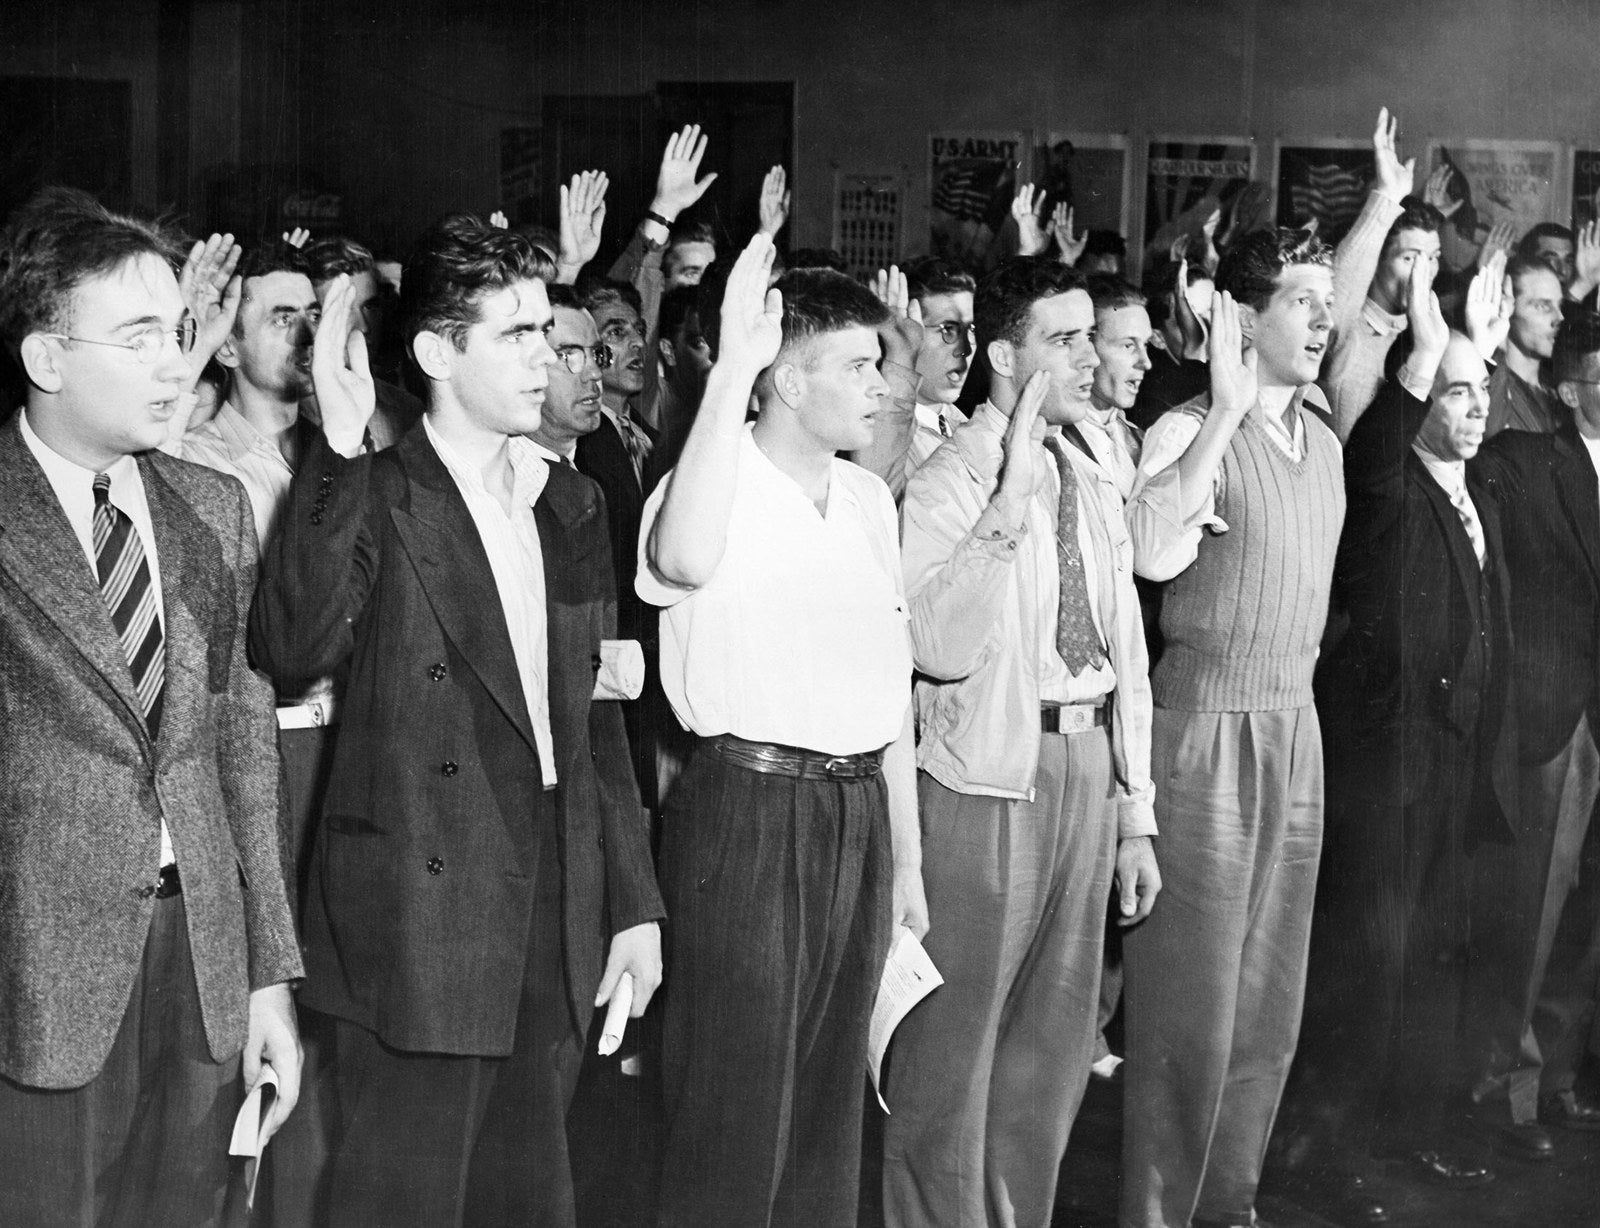 Swearing-in of US soldiers after the Japanese attack on Pearl Harbor, 1941.